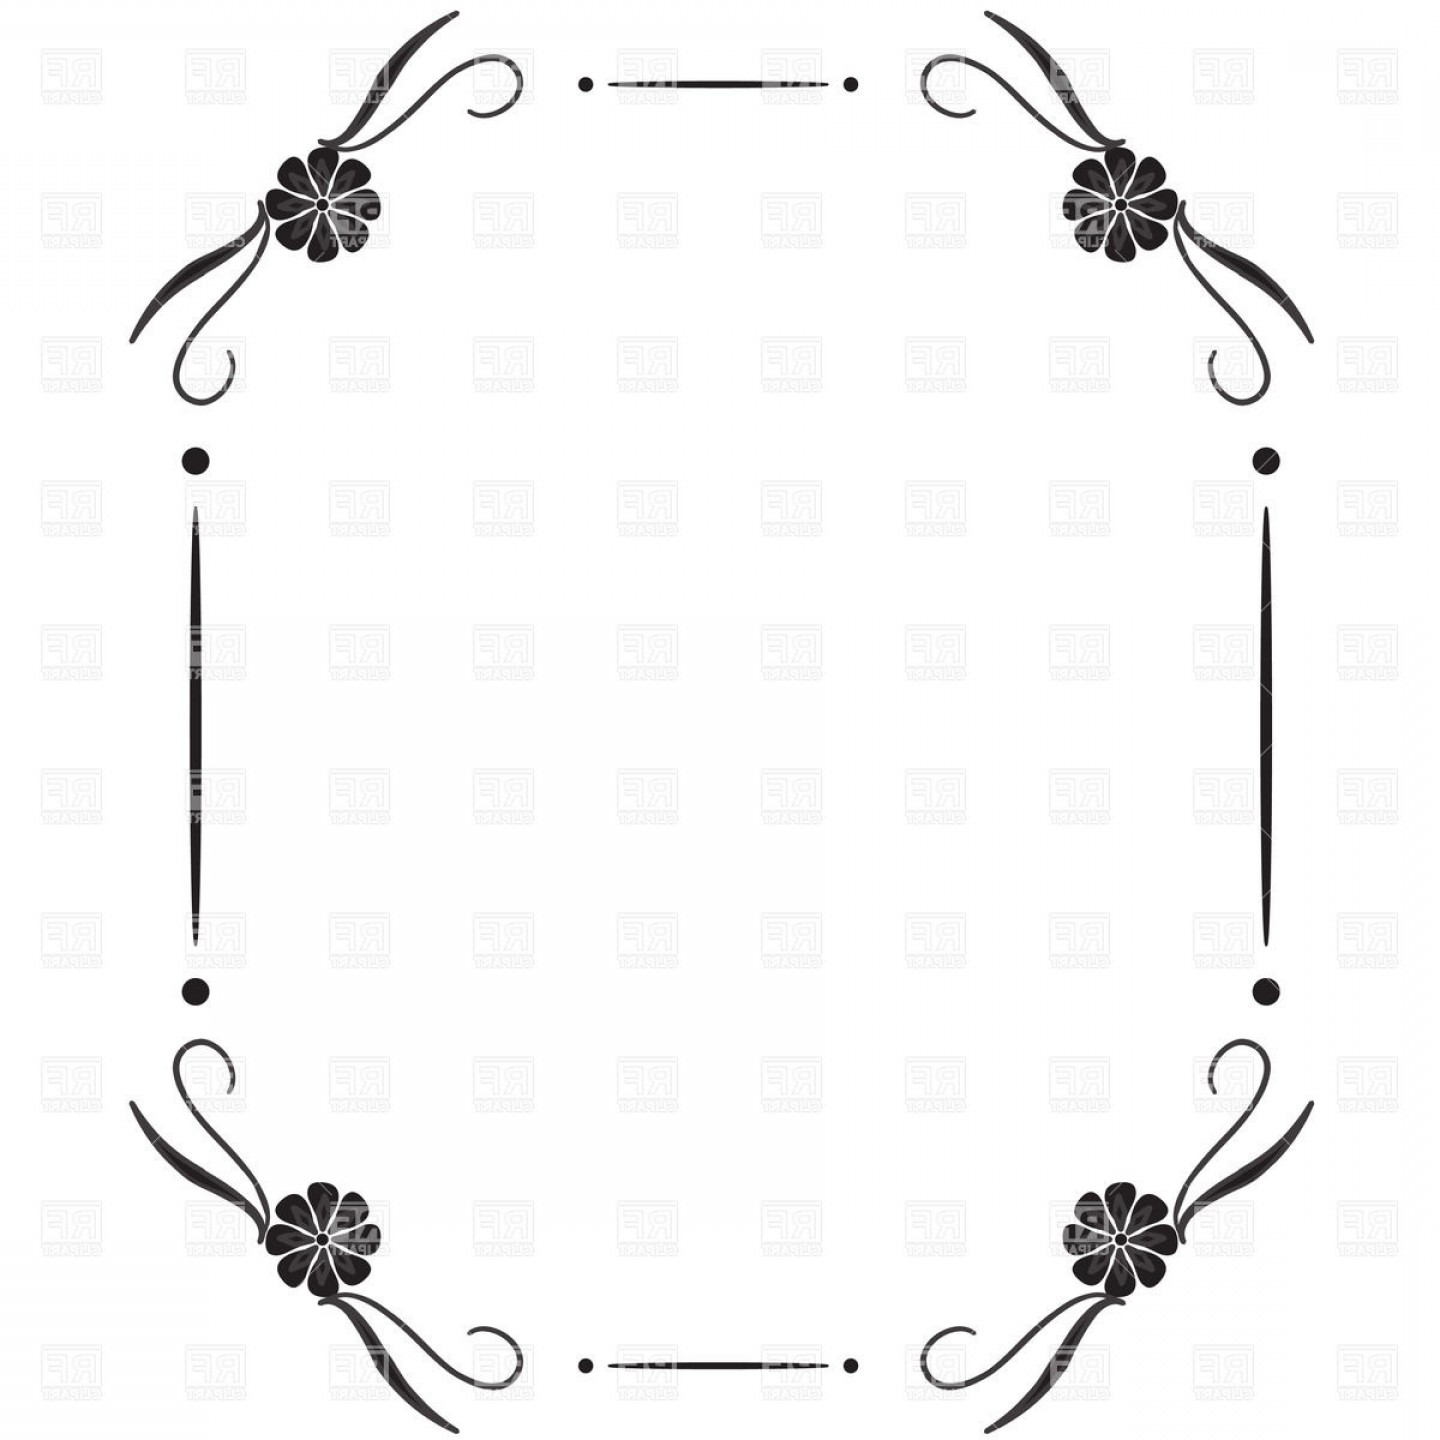 Basic line clipart svg black and white download Simple Square Vintage Frame With Vignettes In Corner Vector Clipart ... svg black and white download